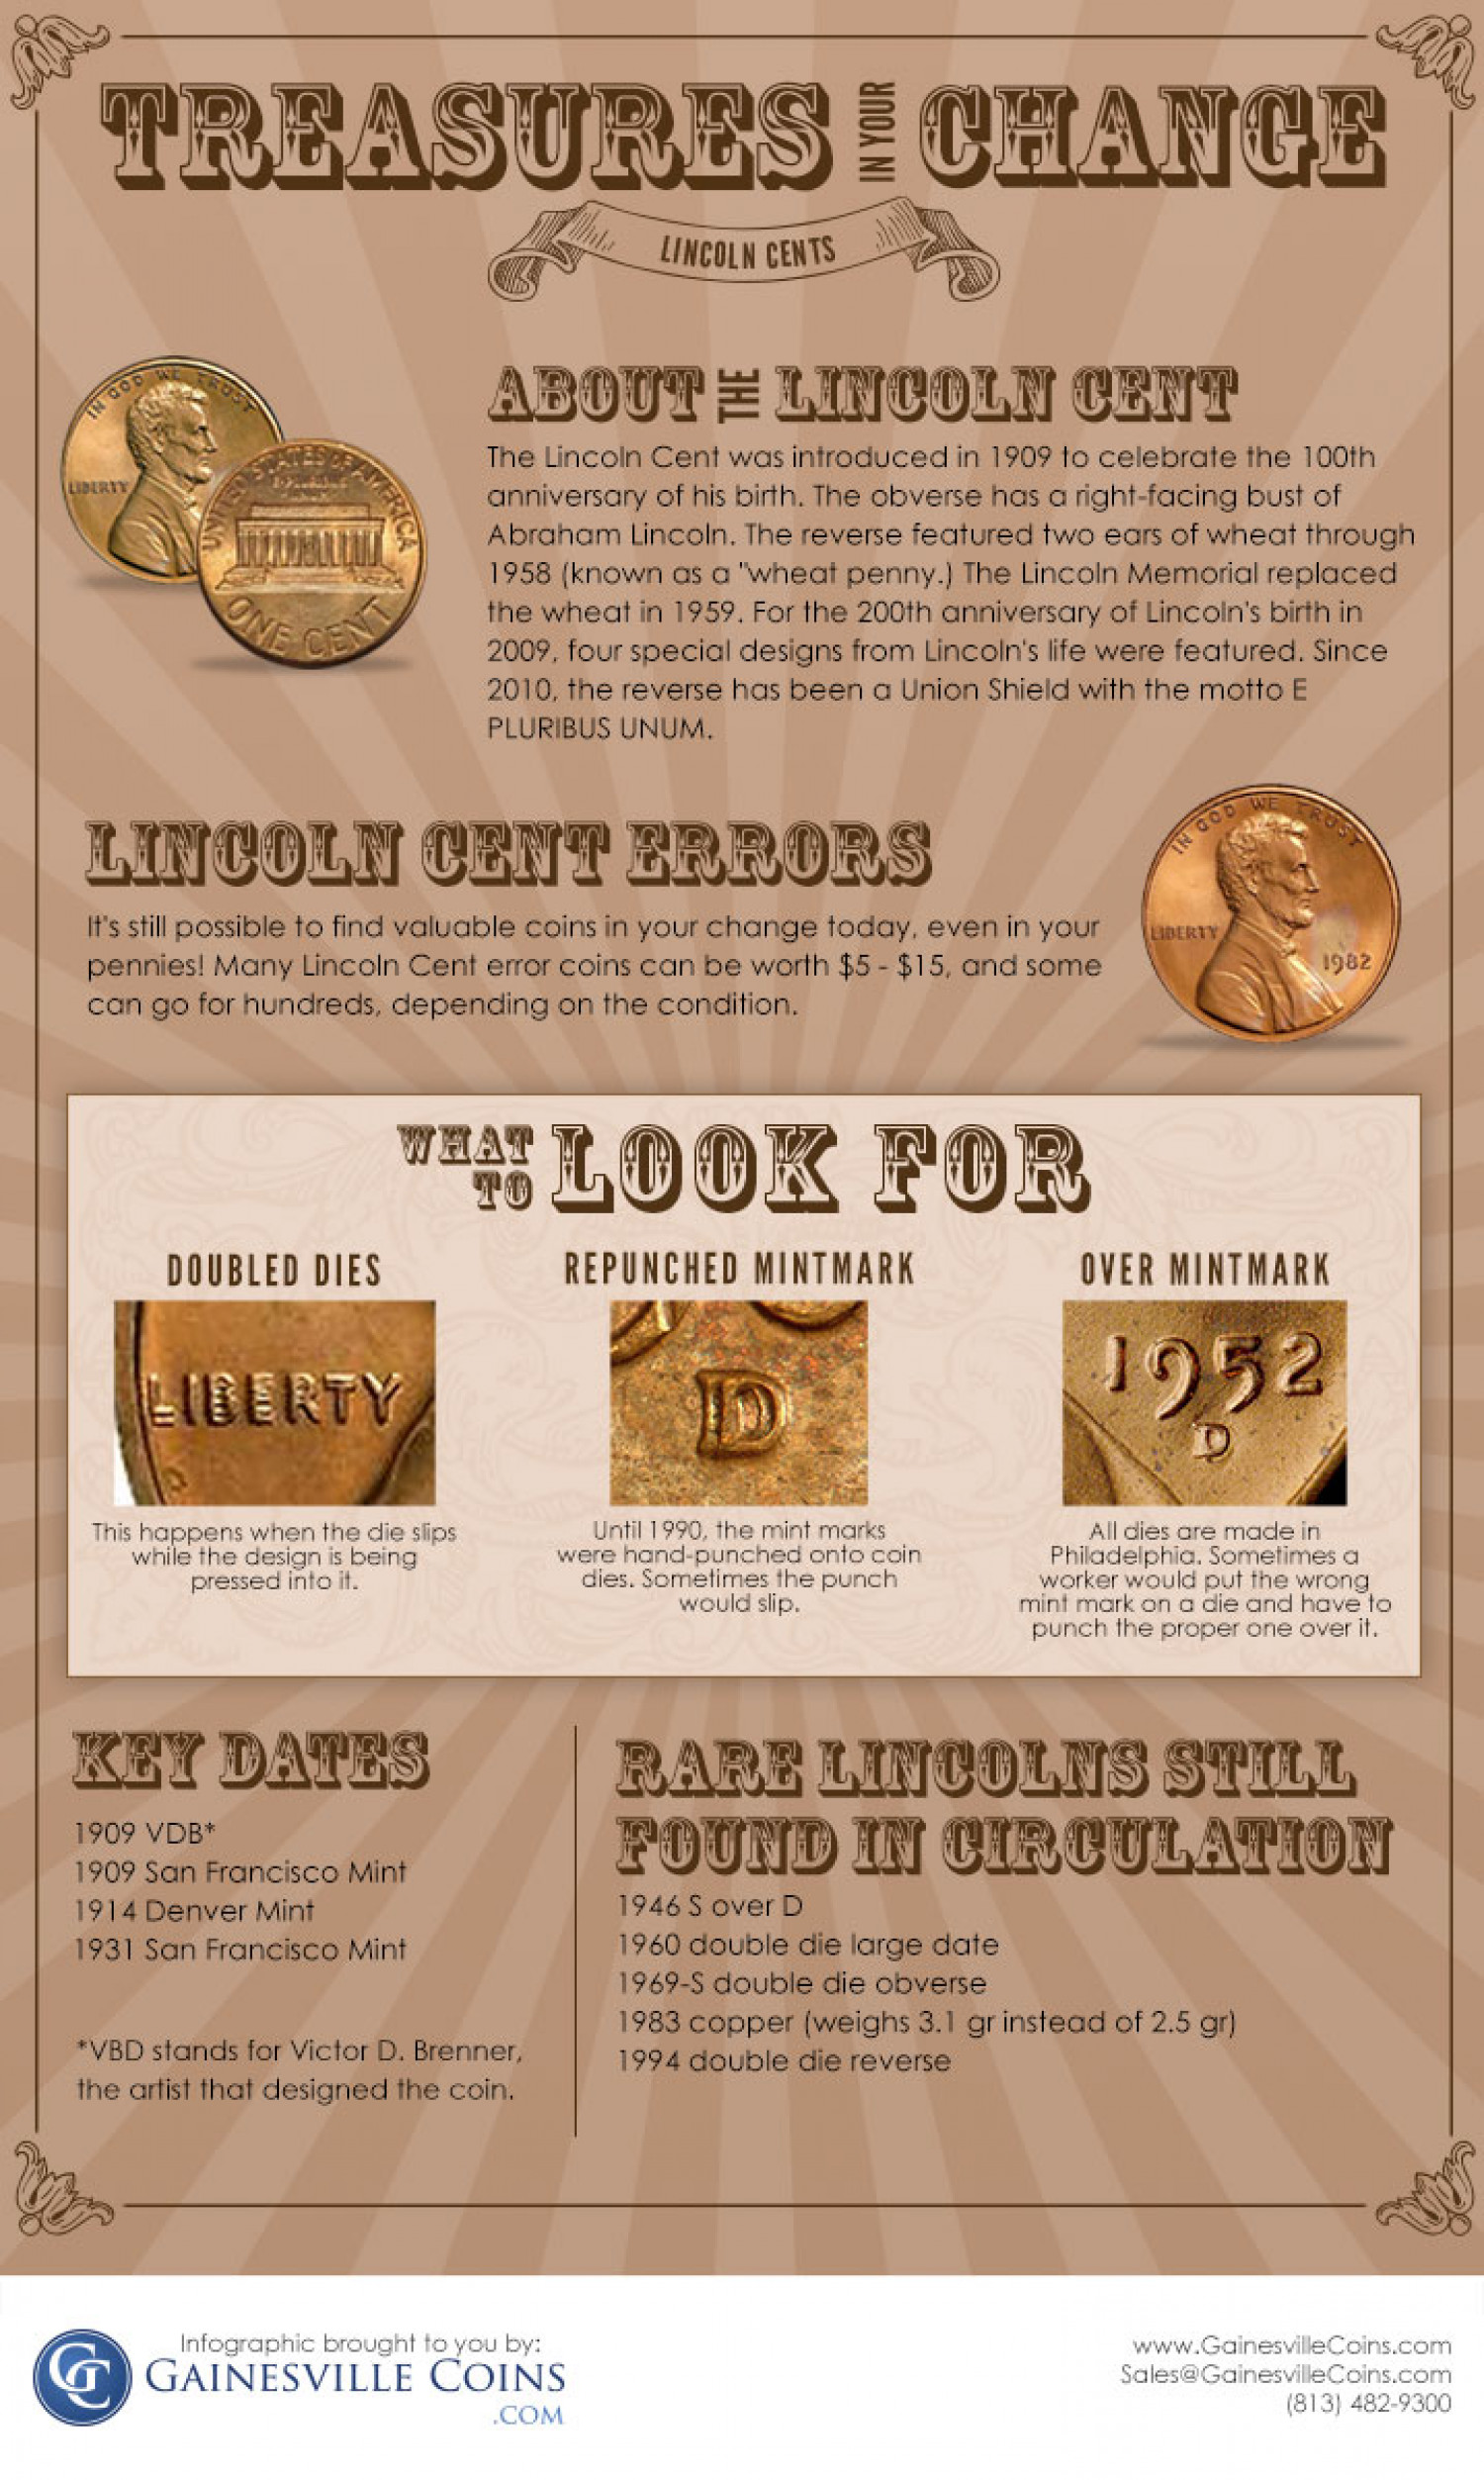 Lincoln Cents: Treasures in Your Change Infographic